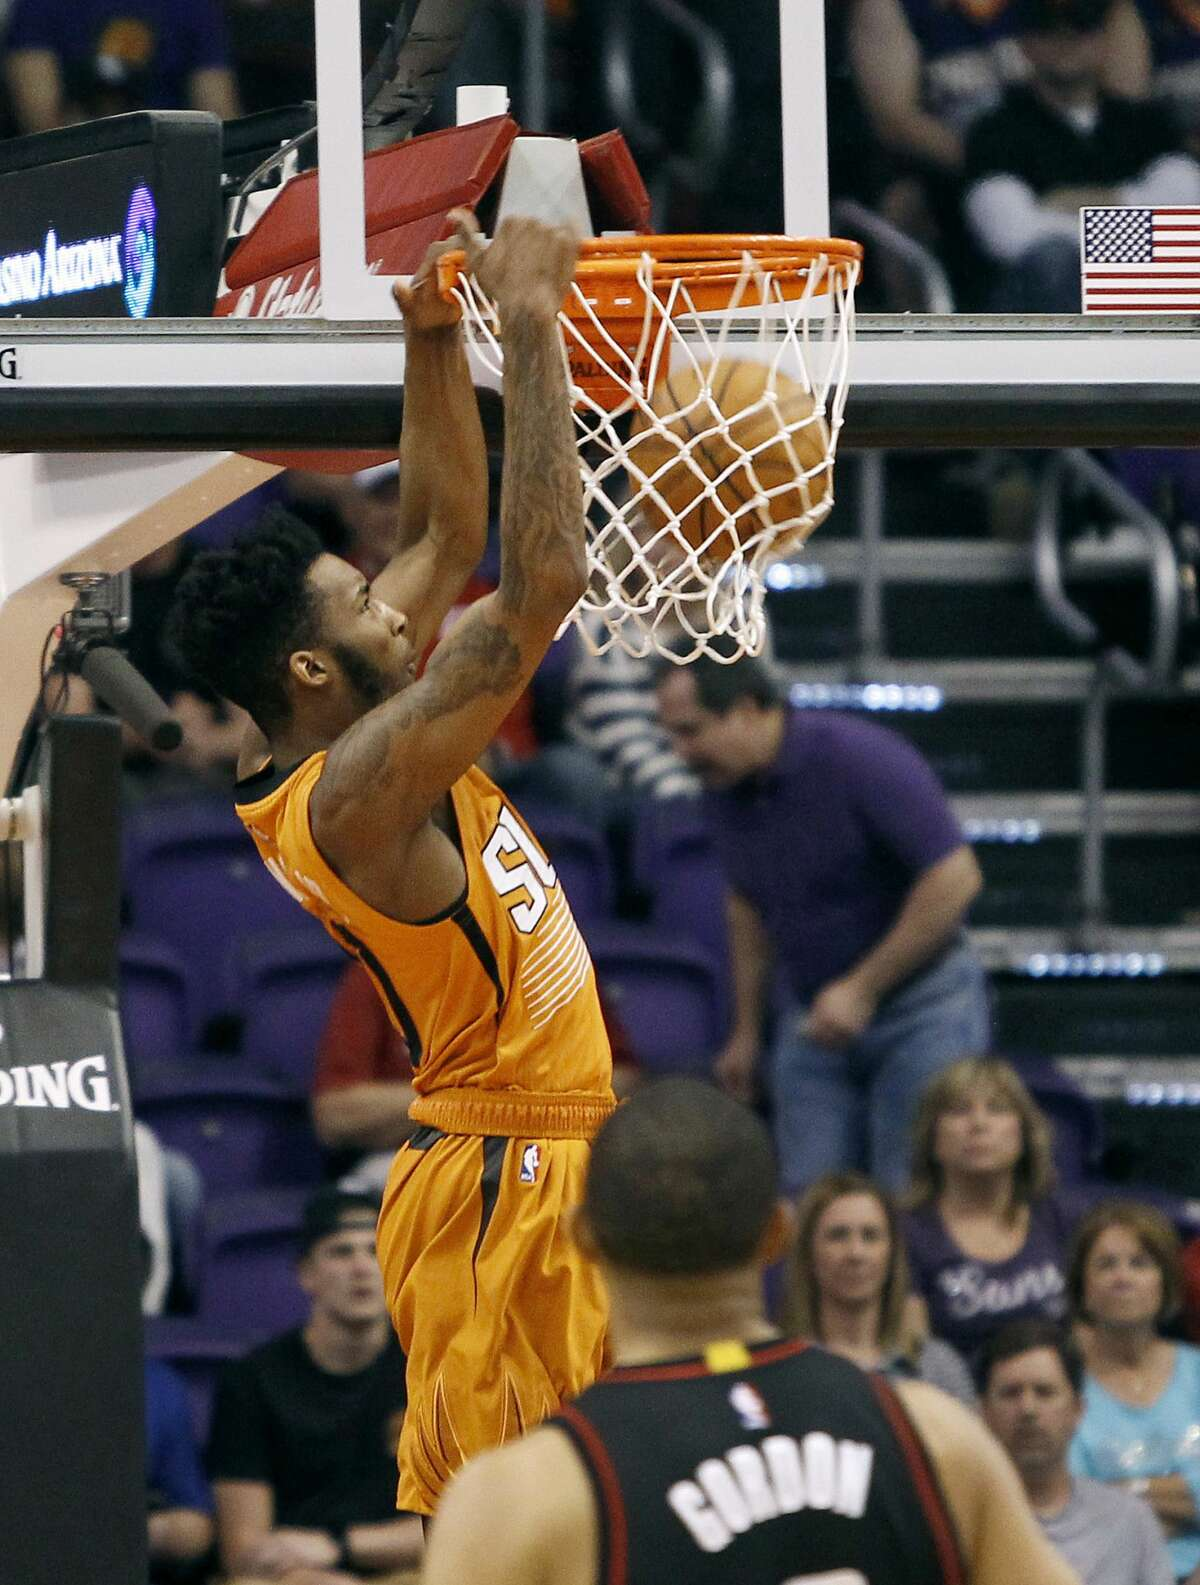 Phoenix Suns' Derrick Jones Jr., top, dunks the ball in front of Houston Rockets' Eric Gordon during the first half of an NBA basketball game, Sunday, April 2, 2017, in Phoenix. (AP Photo/Ralph Freso)